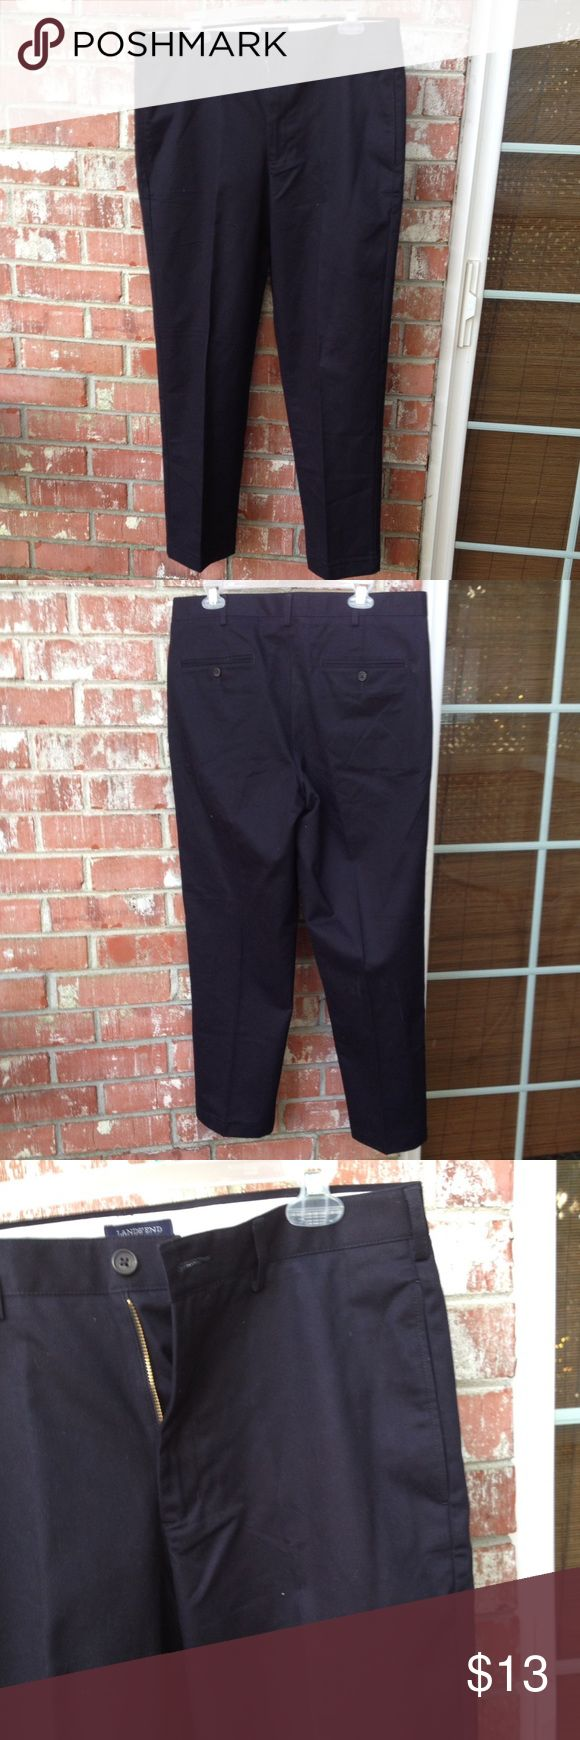 Lands' End Black Khaki Pants Men's 34x29.5 inseam. Traditional fit. Worn once for a couple hours. Will be gently wash and line dried. NEW Lands' End Pants Chinos & Khakis